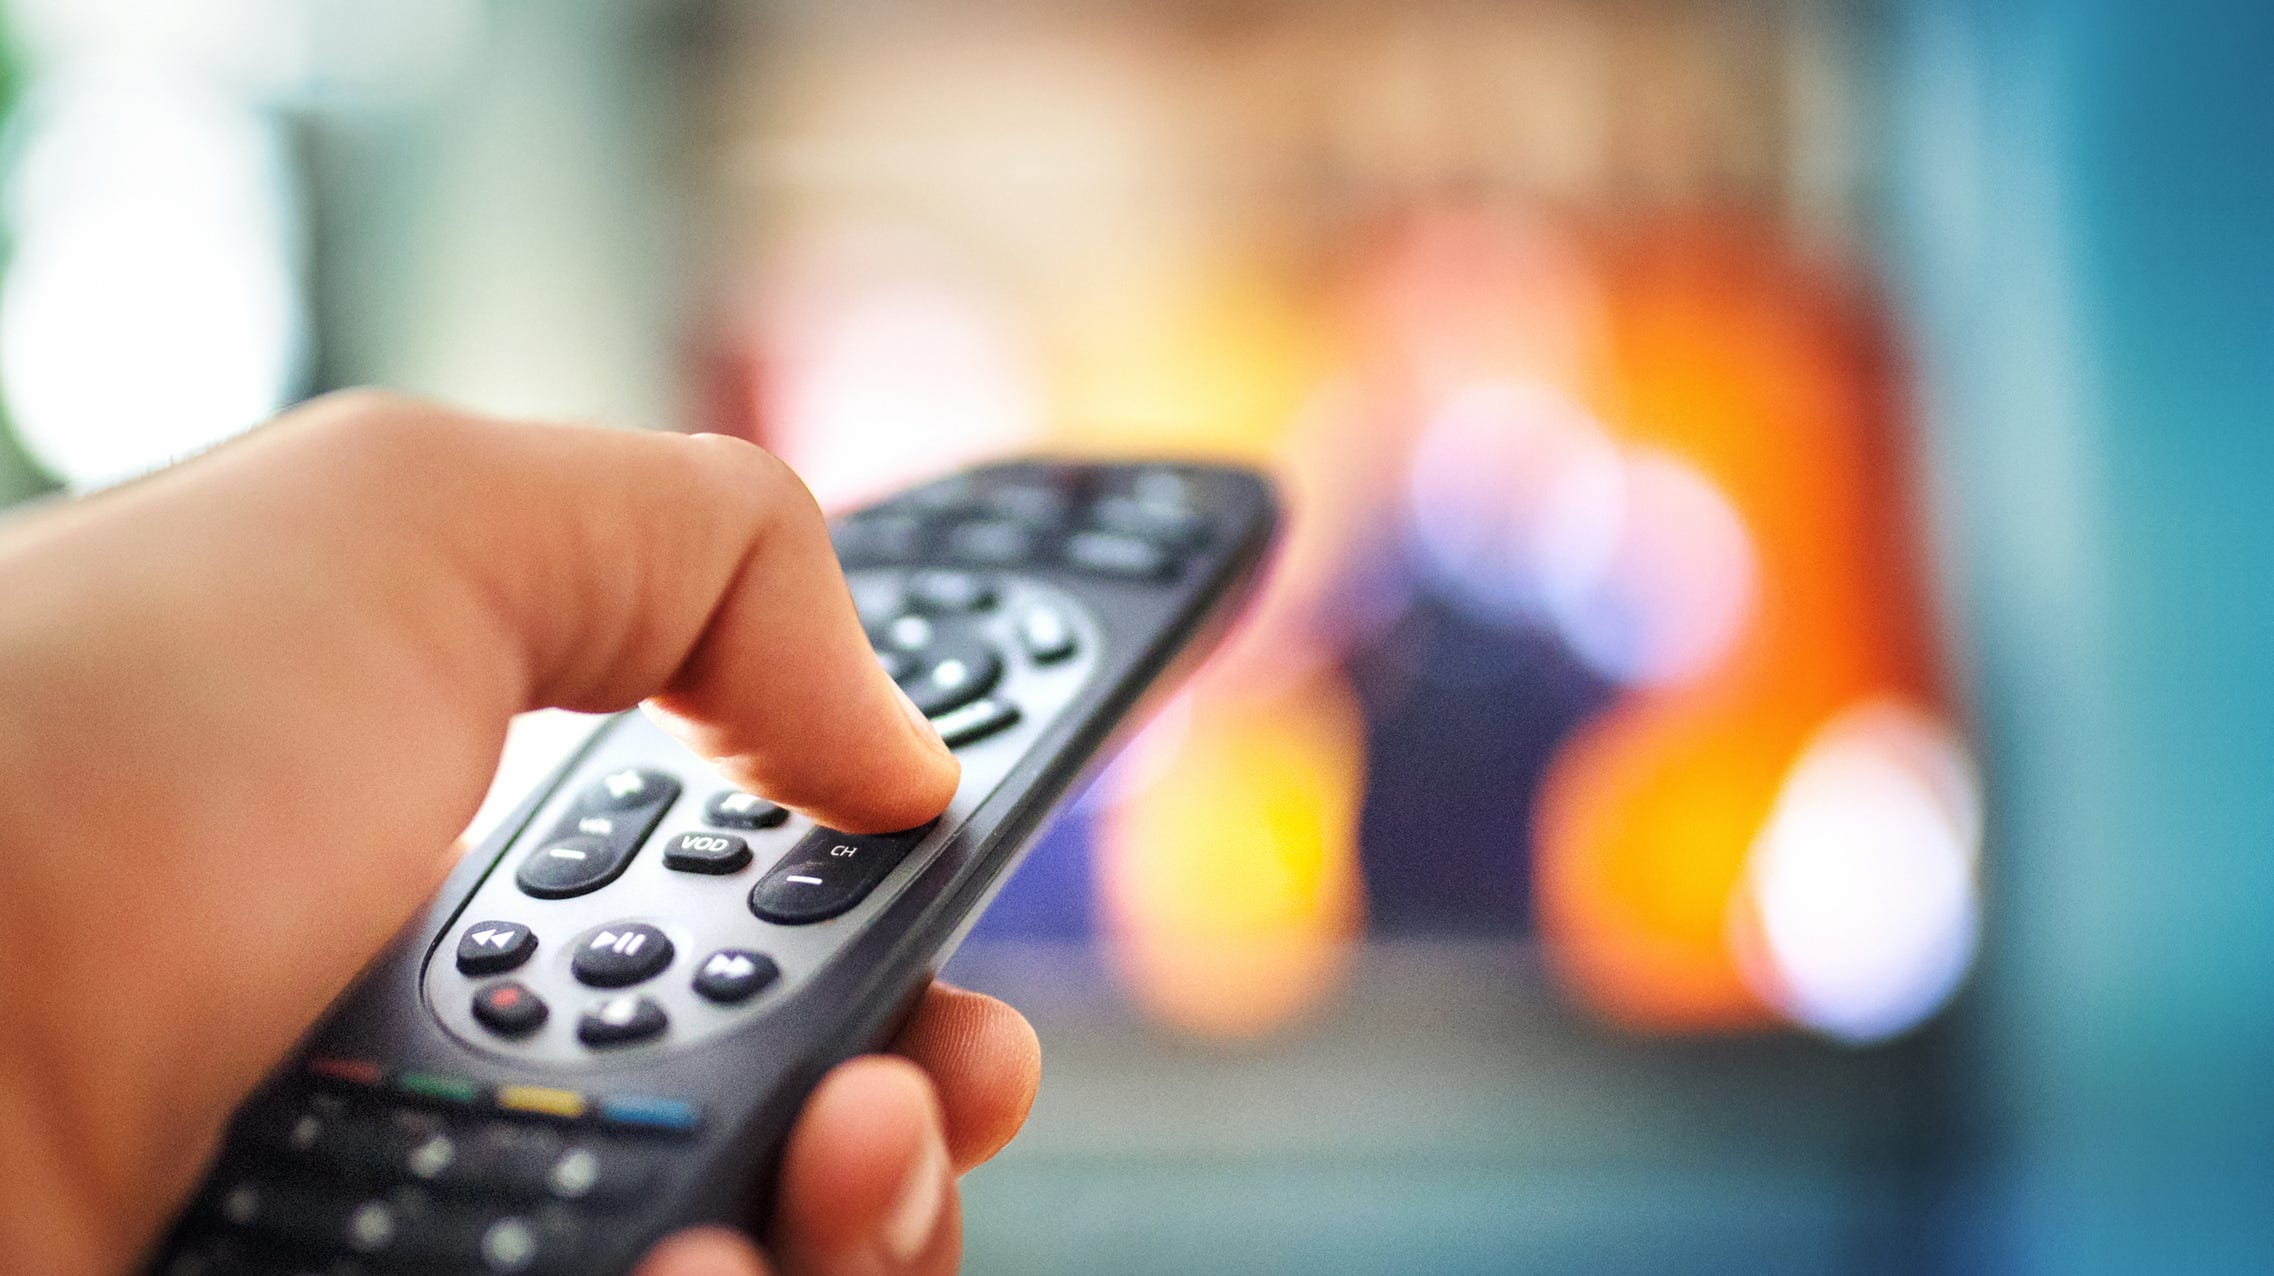 DirecTV customers lose another local channel